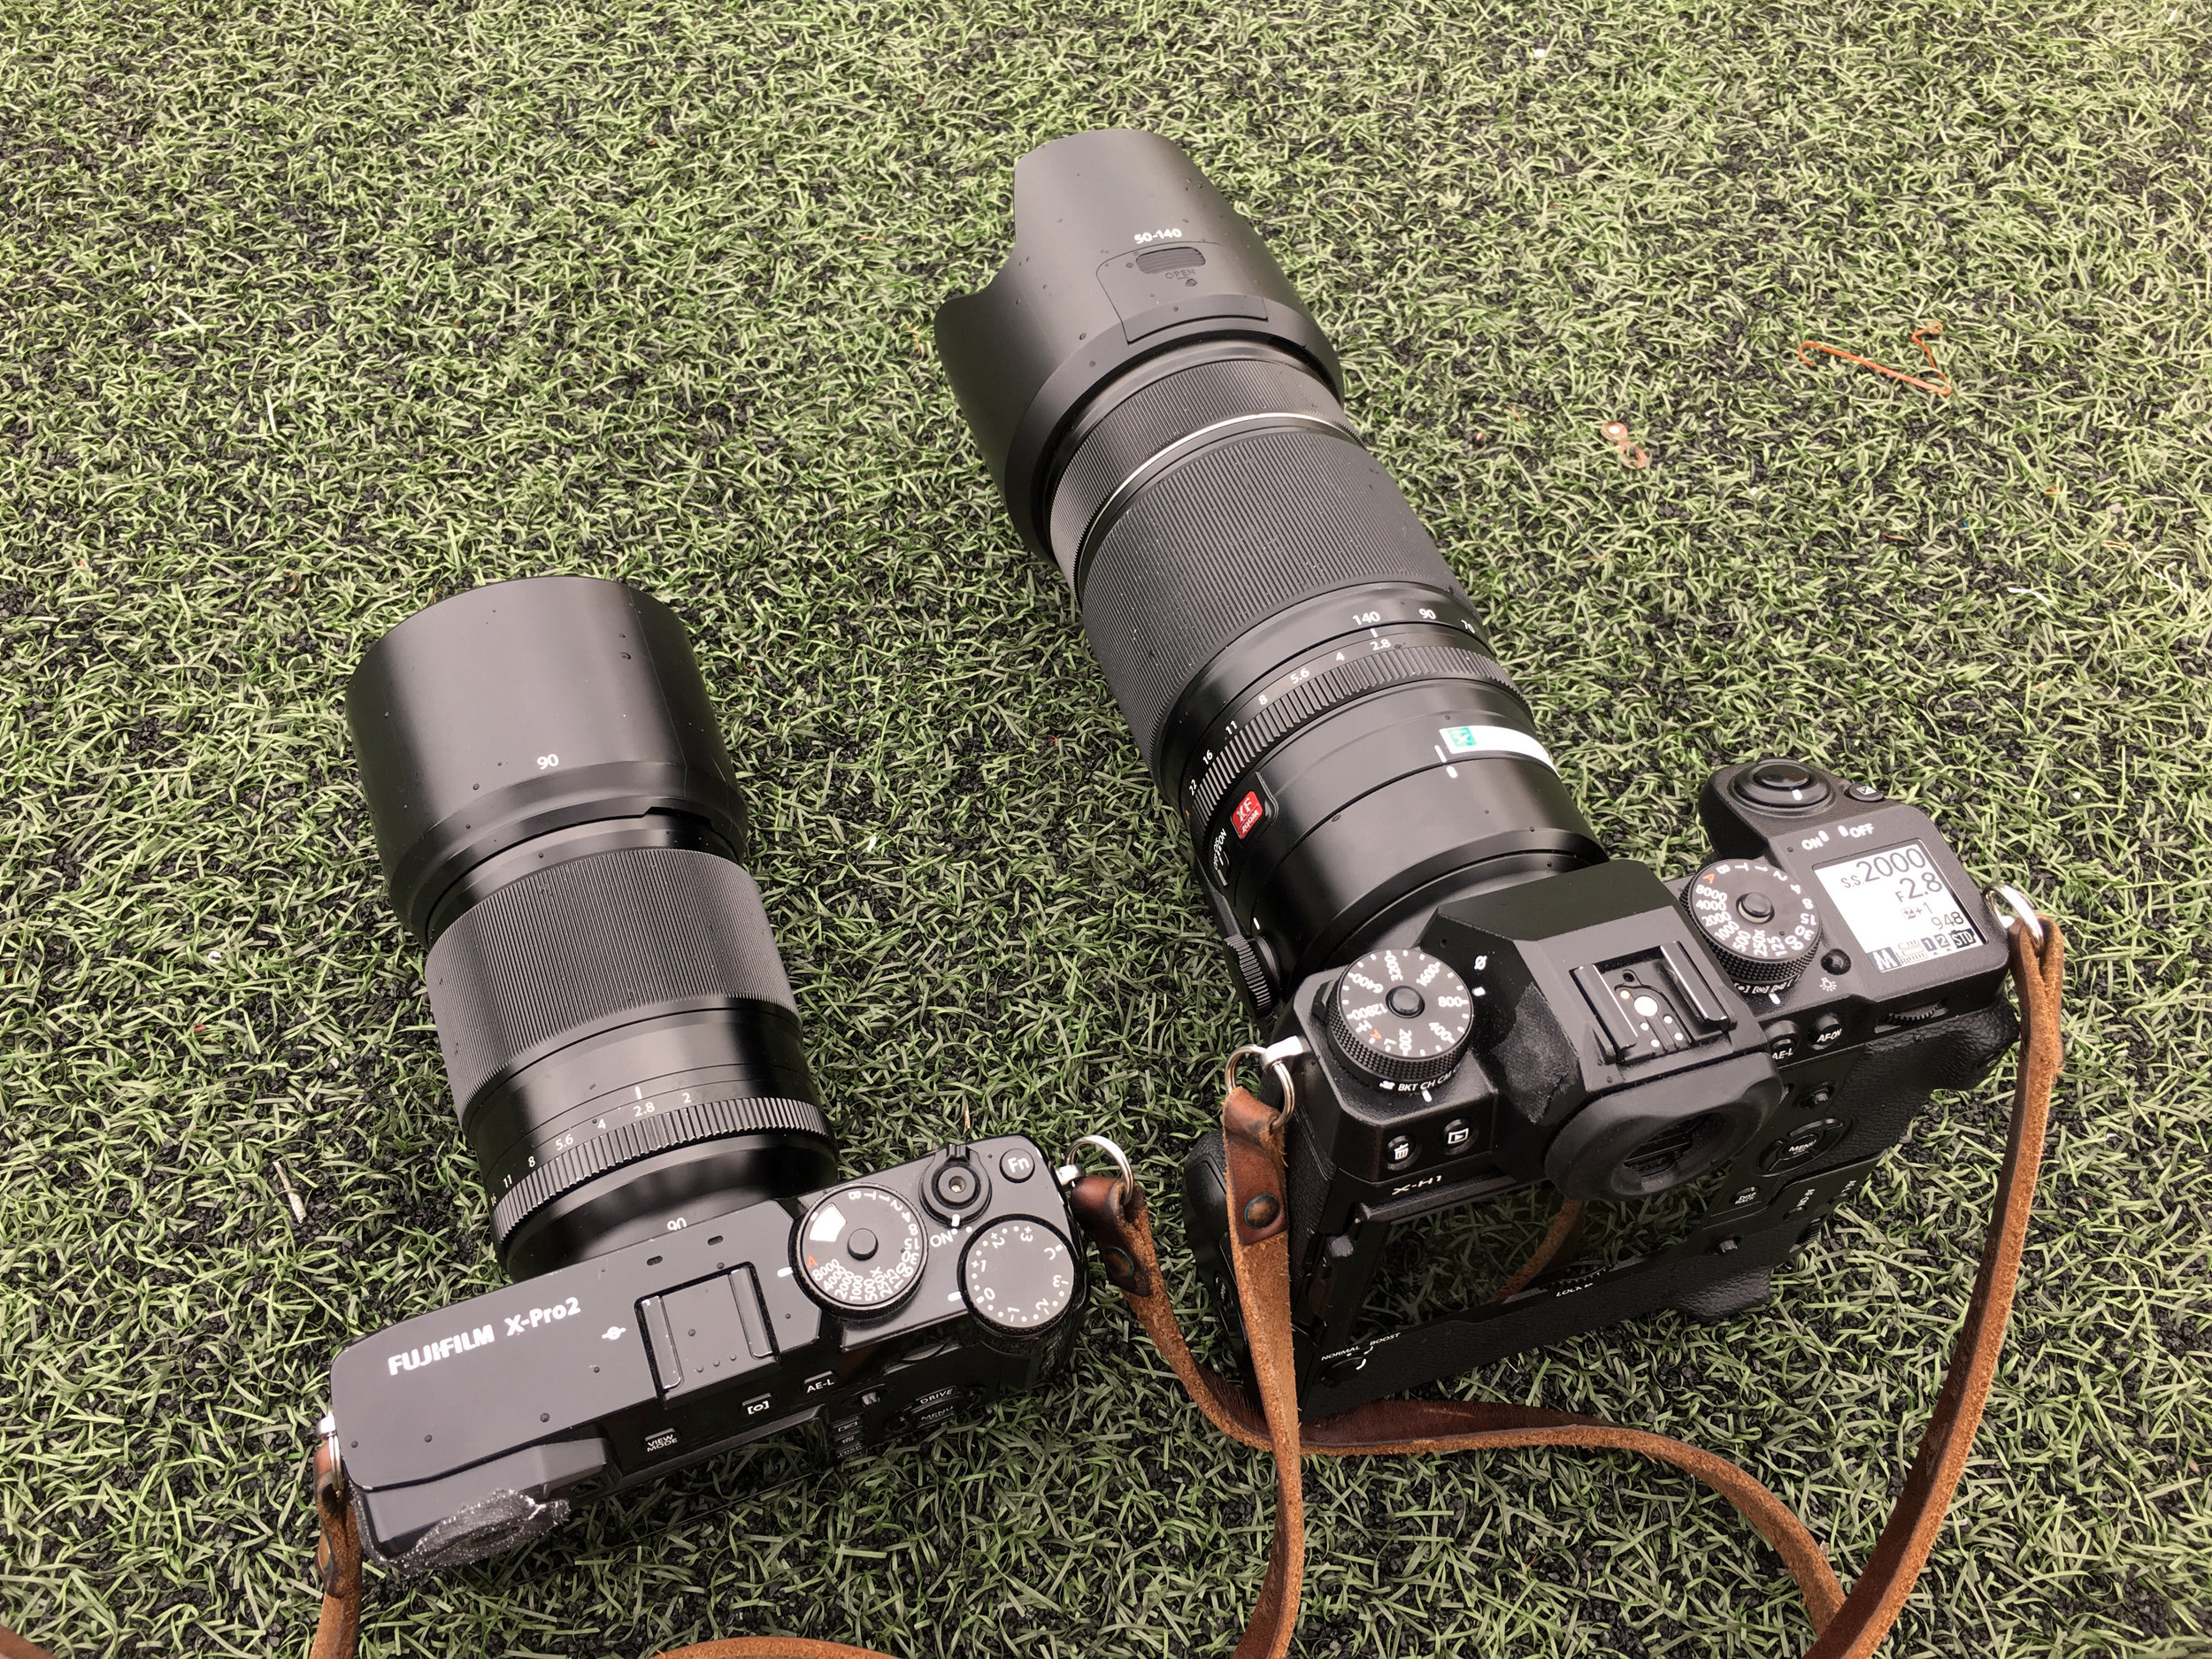 Size comparison . Fujifilm X-Pro2 with XF 90mm f/2 R LM WR - Fujifilm X-H1 / VPB-XH1 Grip and XF 50-140mm f/2.8 R LM OIS WR